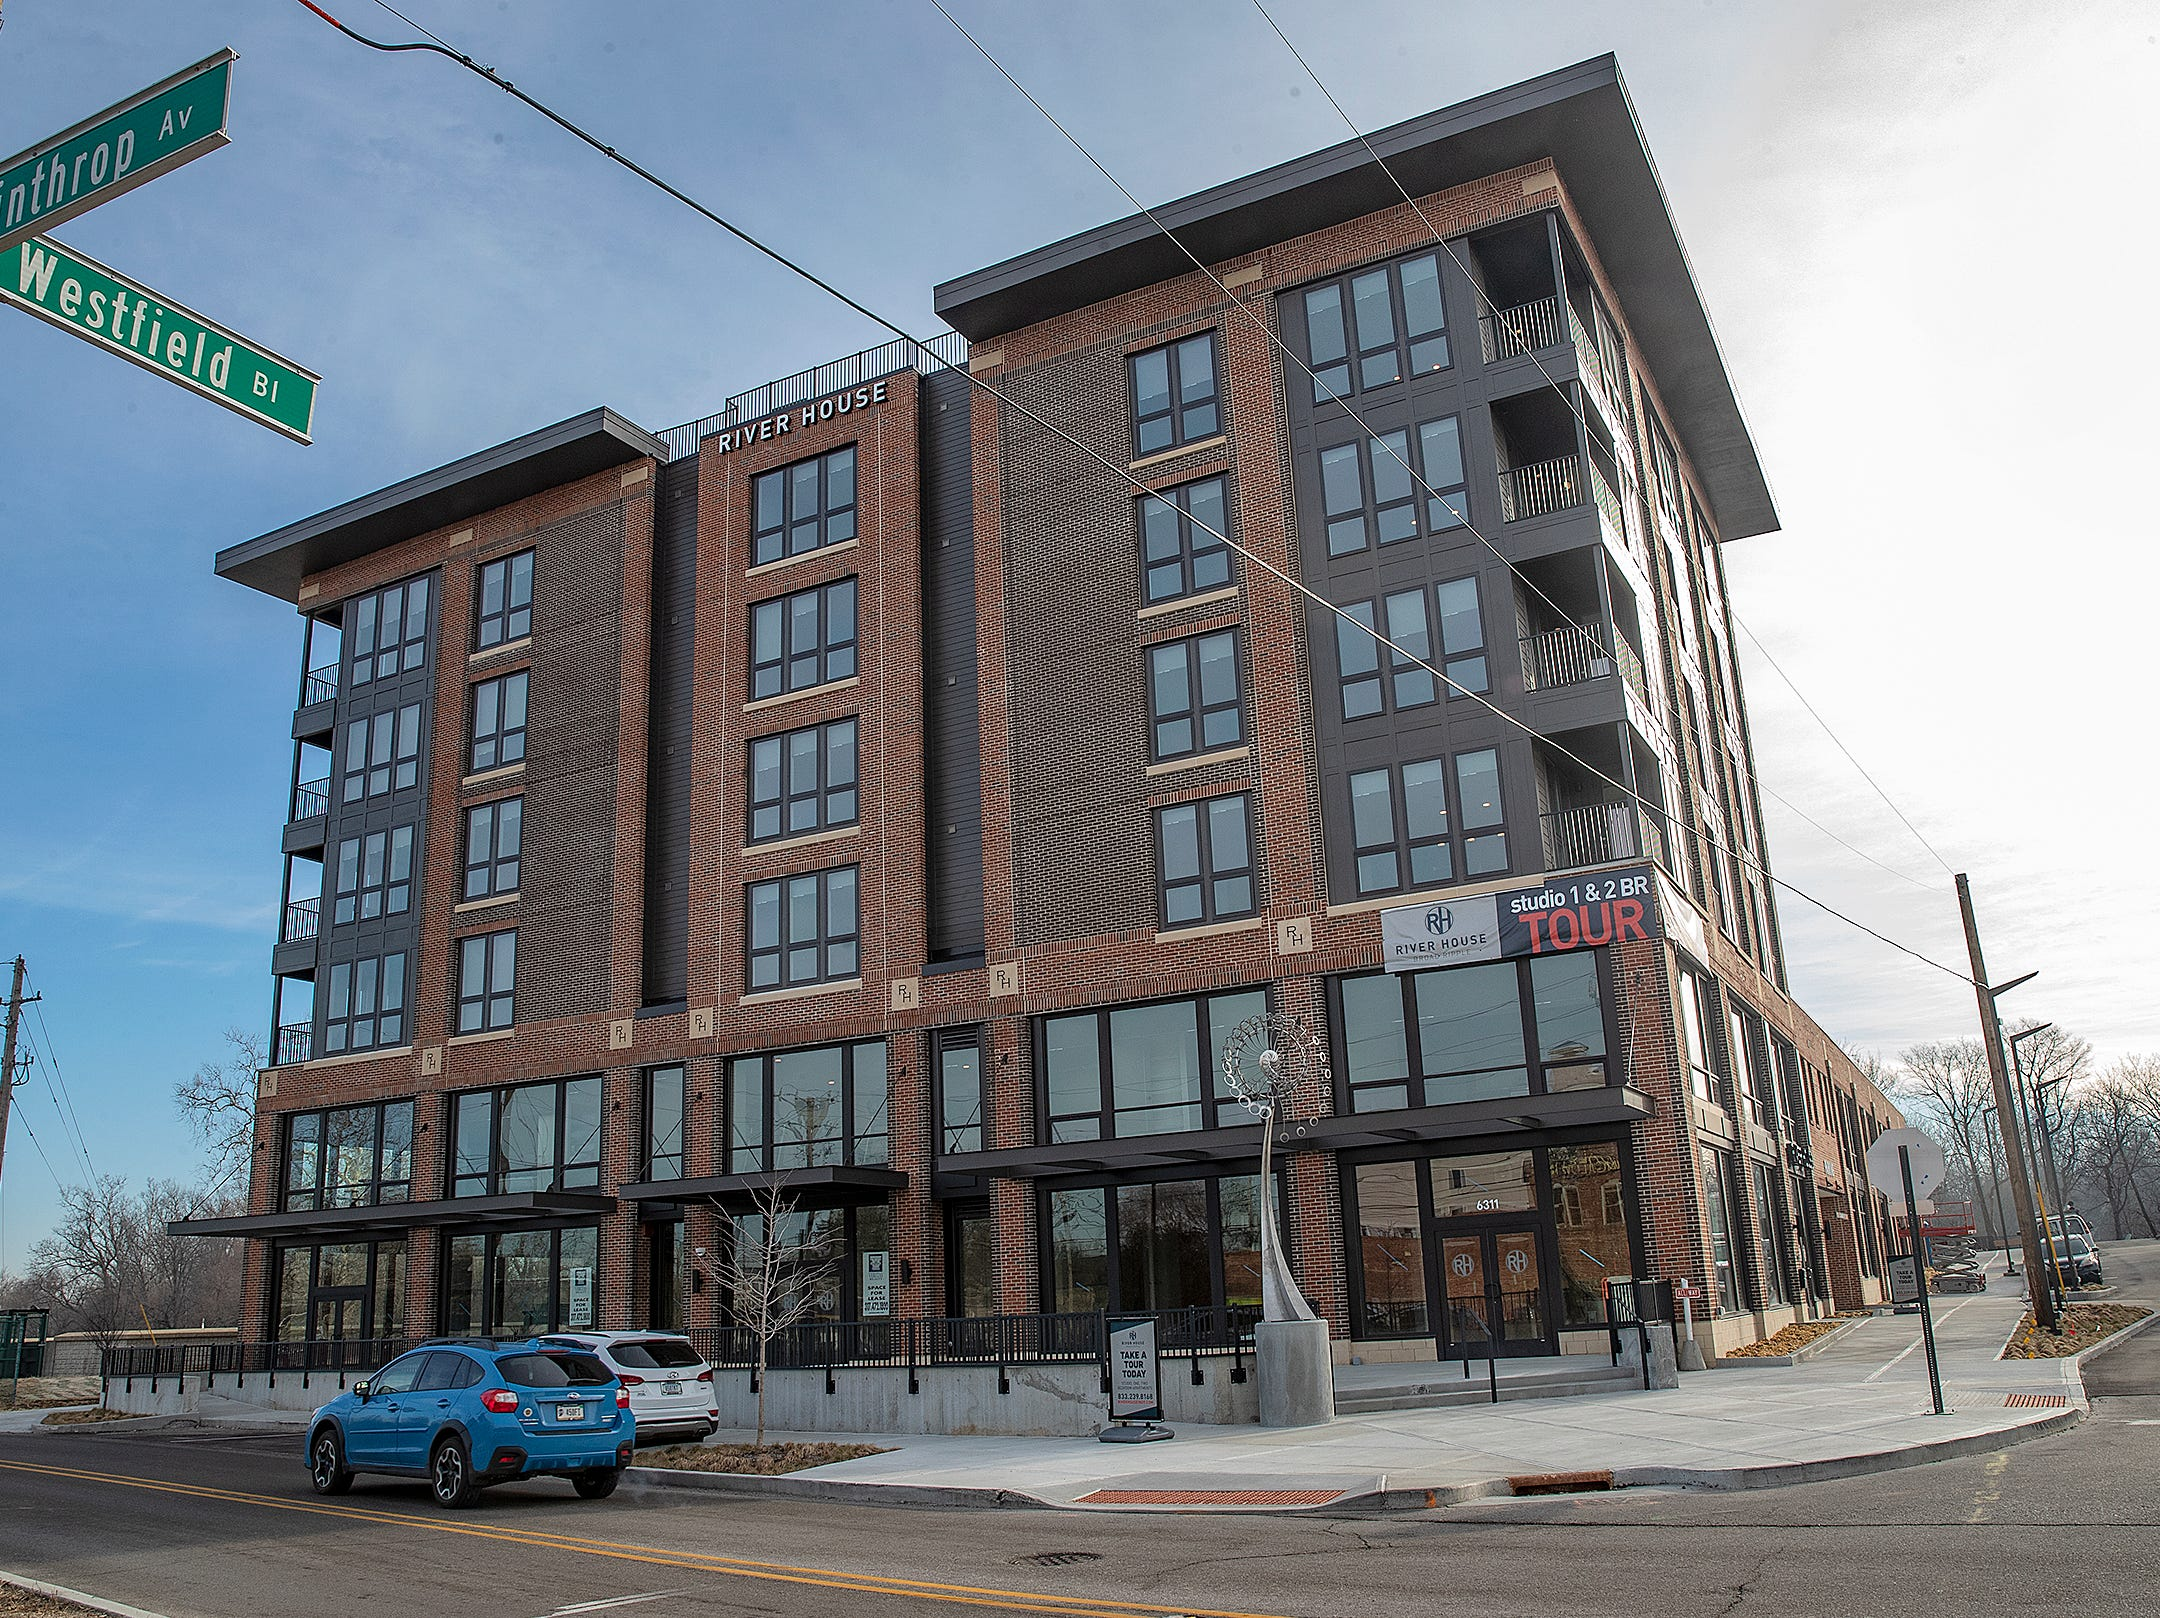 The River House features studio, 1 and 2 bedroom new apartment homes in Broad Ripple on Tueday, March 12, 2019. Located in the heart of Broad Ripple right on the Monon Trail and White River.